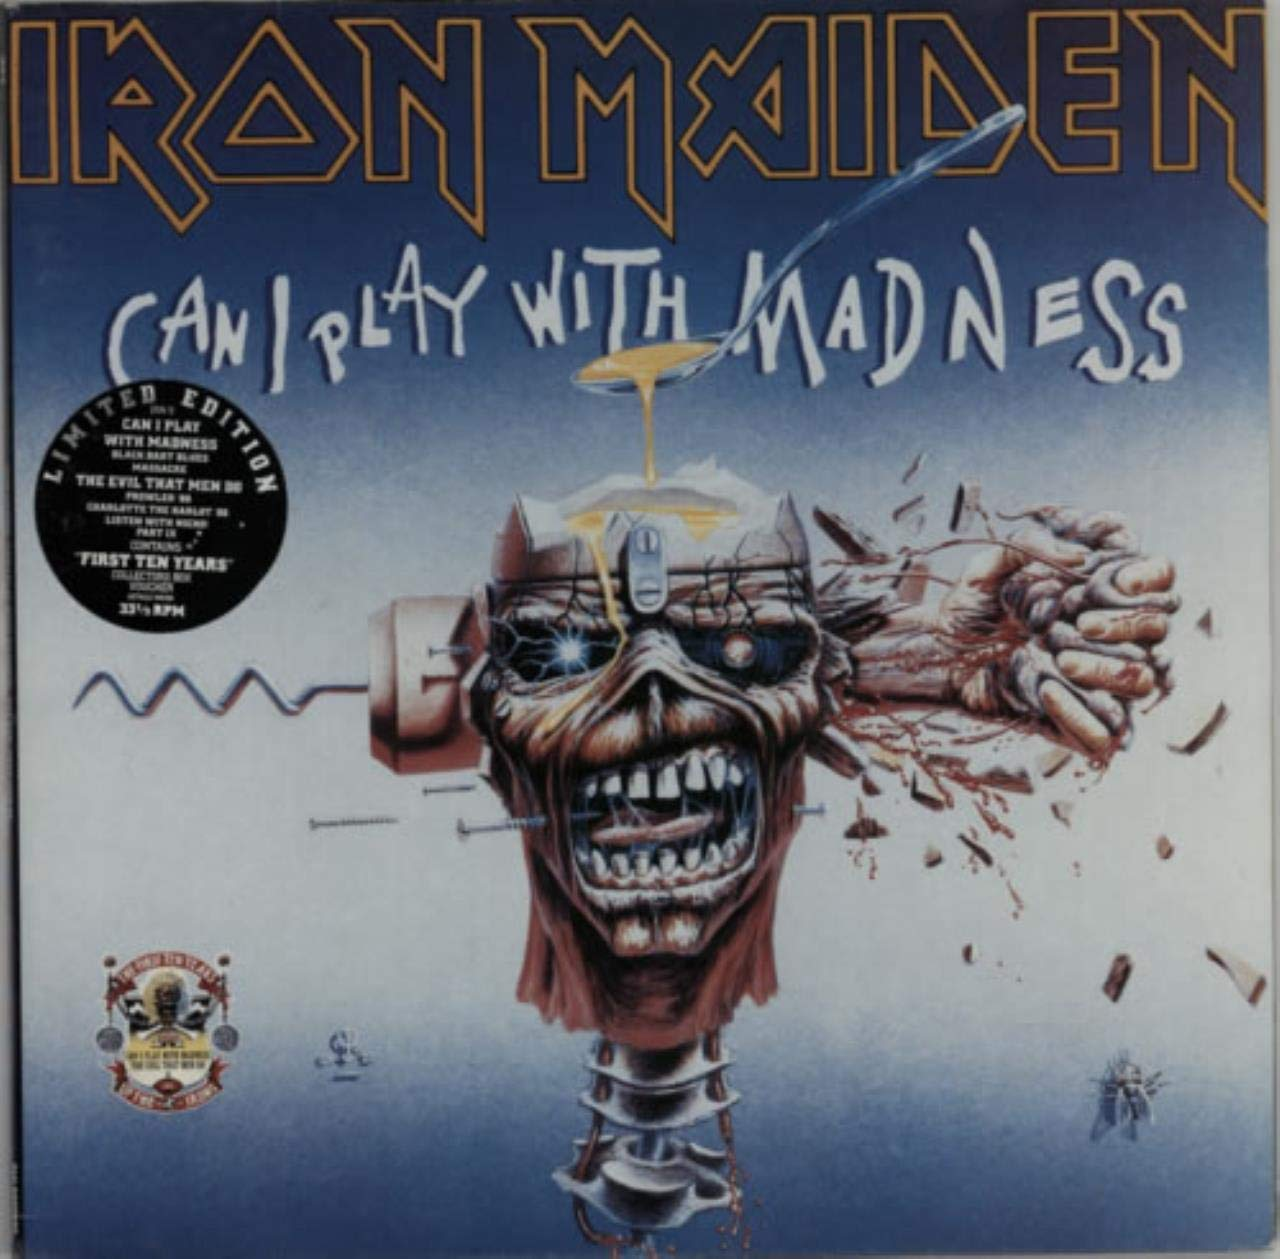 Can I Play With Madness / The Evil That Men Do B003DXSR6U